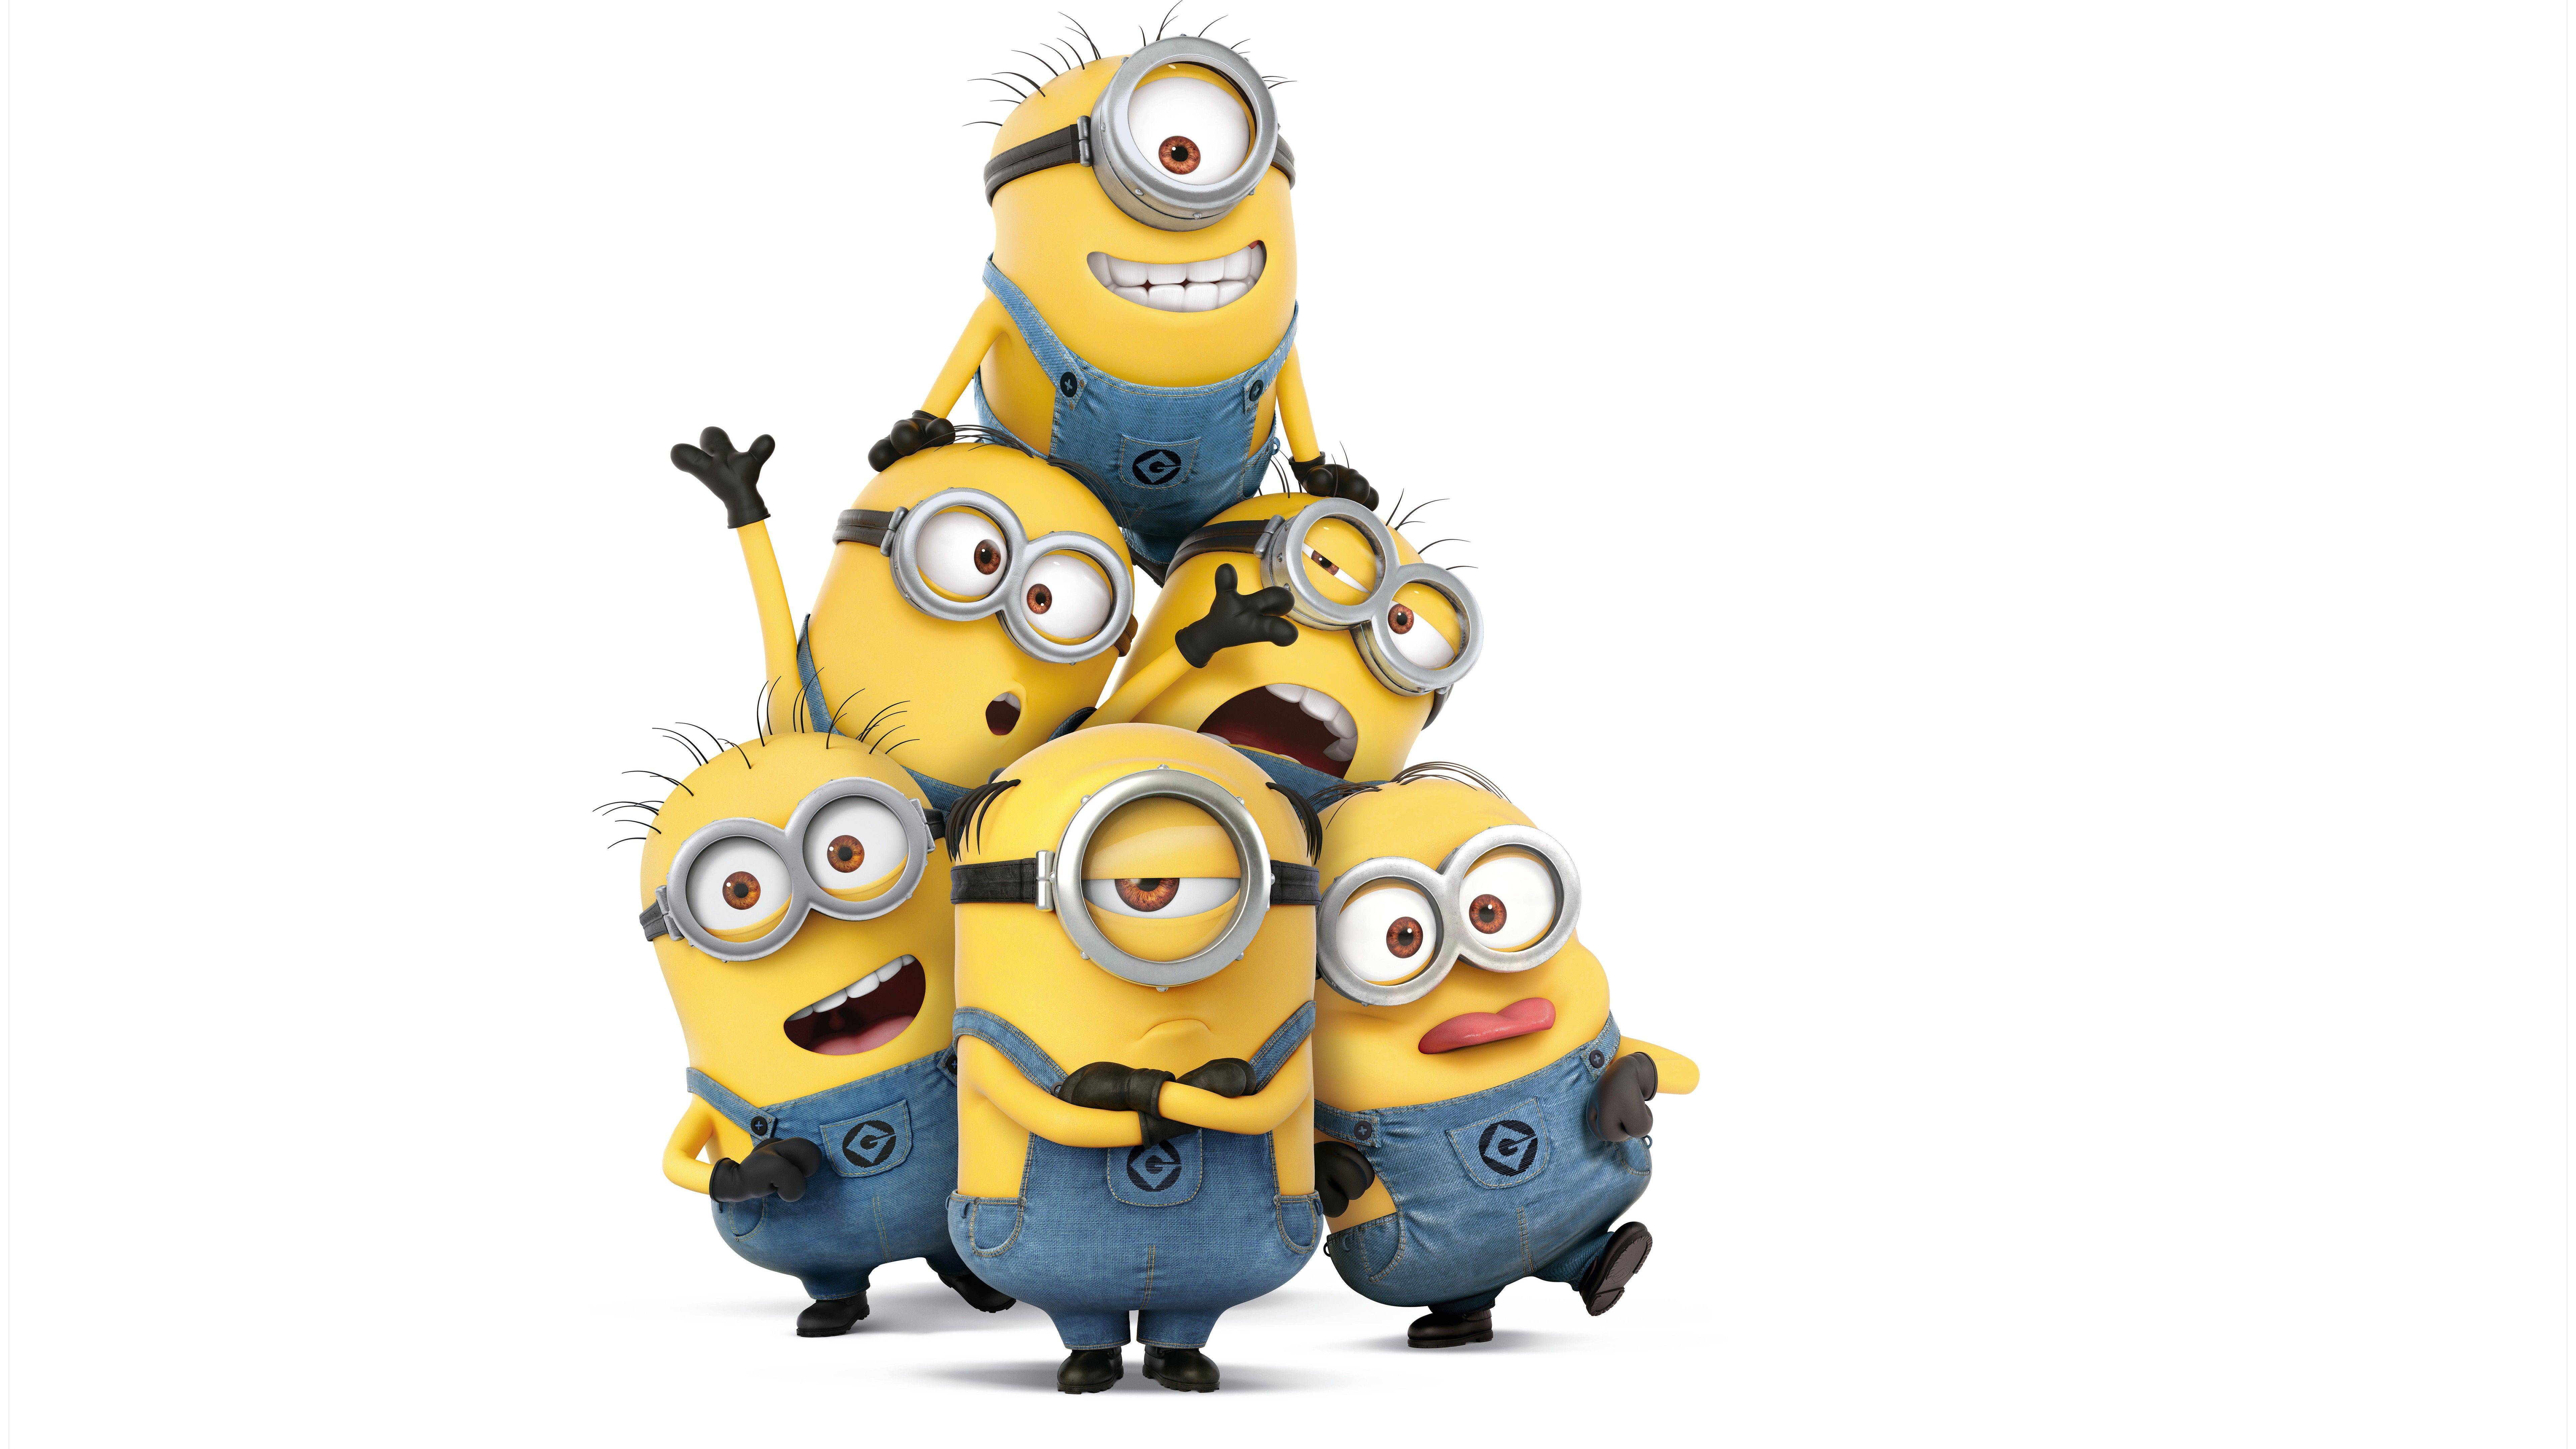 Download Free Minions Wallpapers Free Hd Wallpapers Part 5 Minions Wallpaper 8k Wallpaper Minions